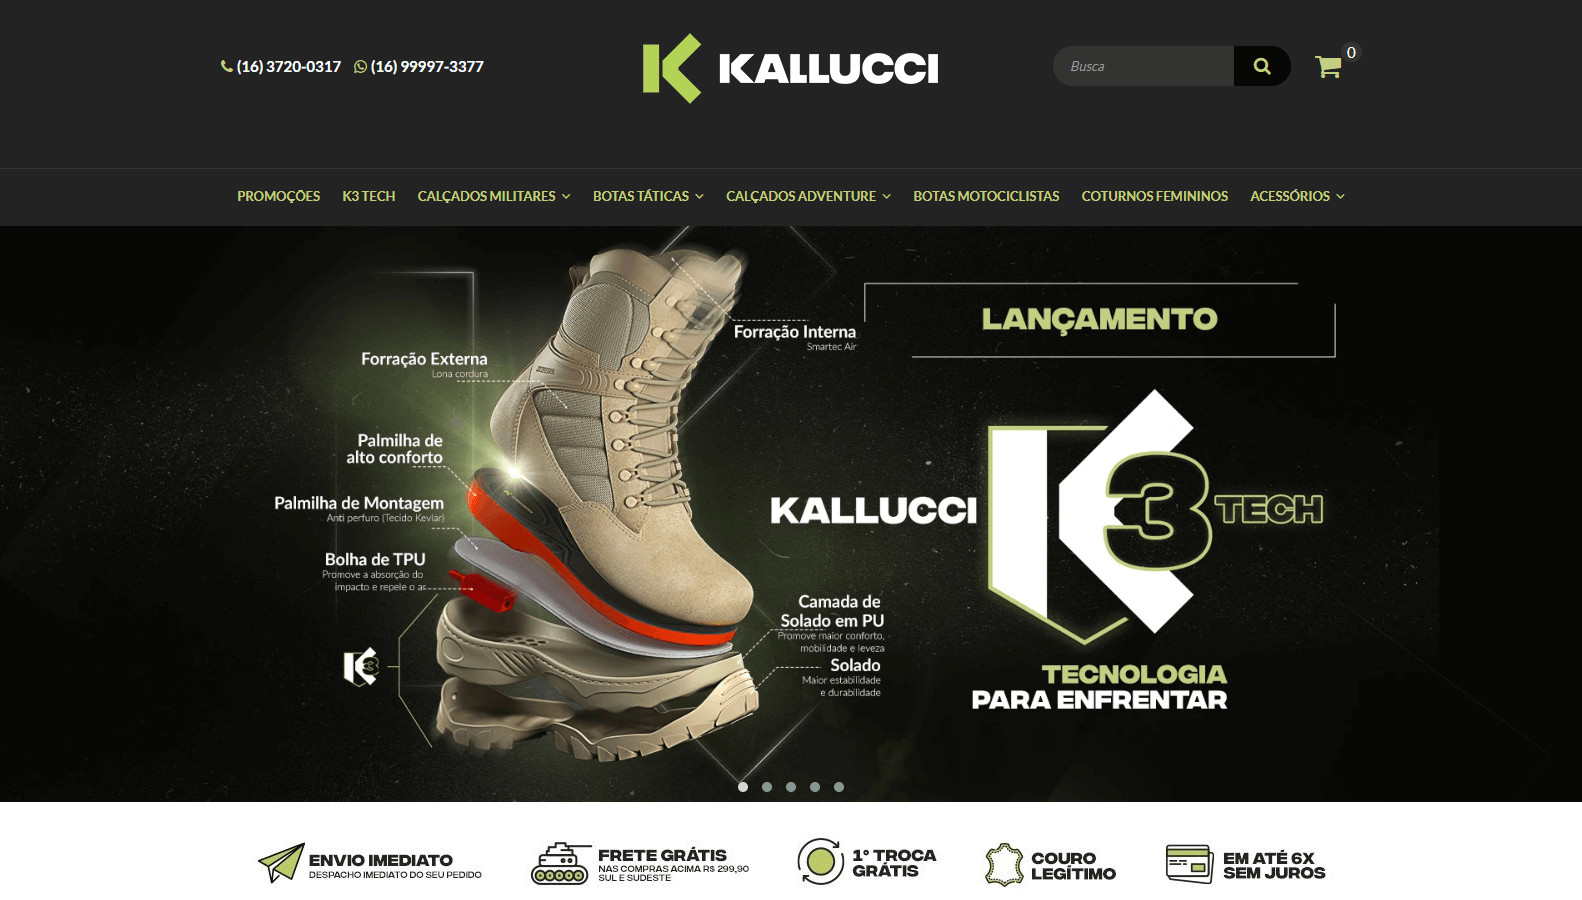 Kalucci